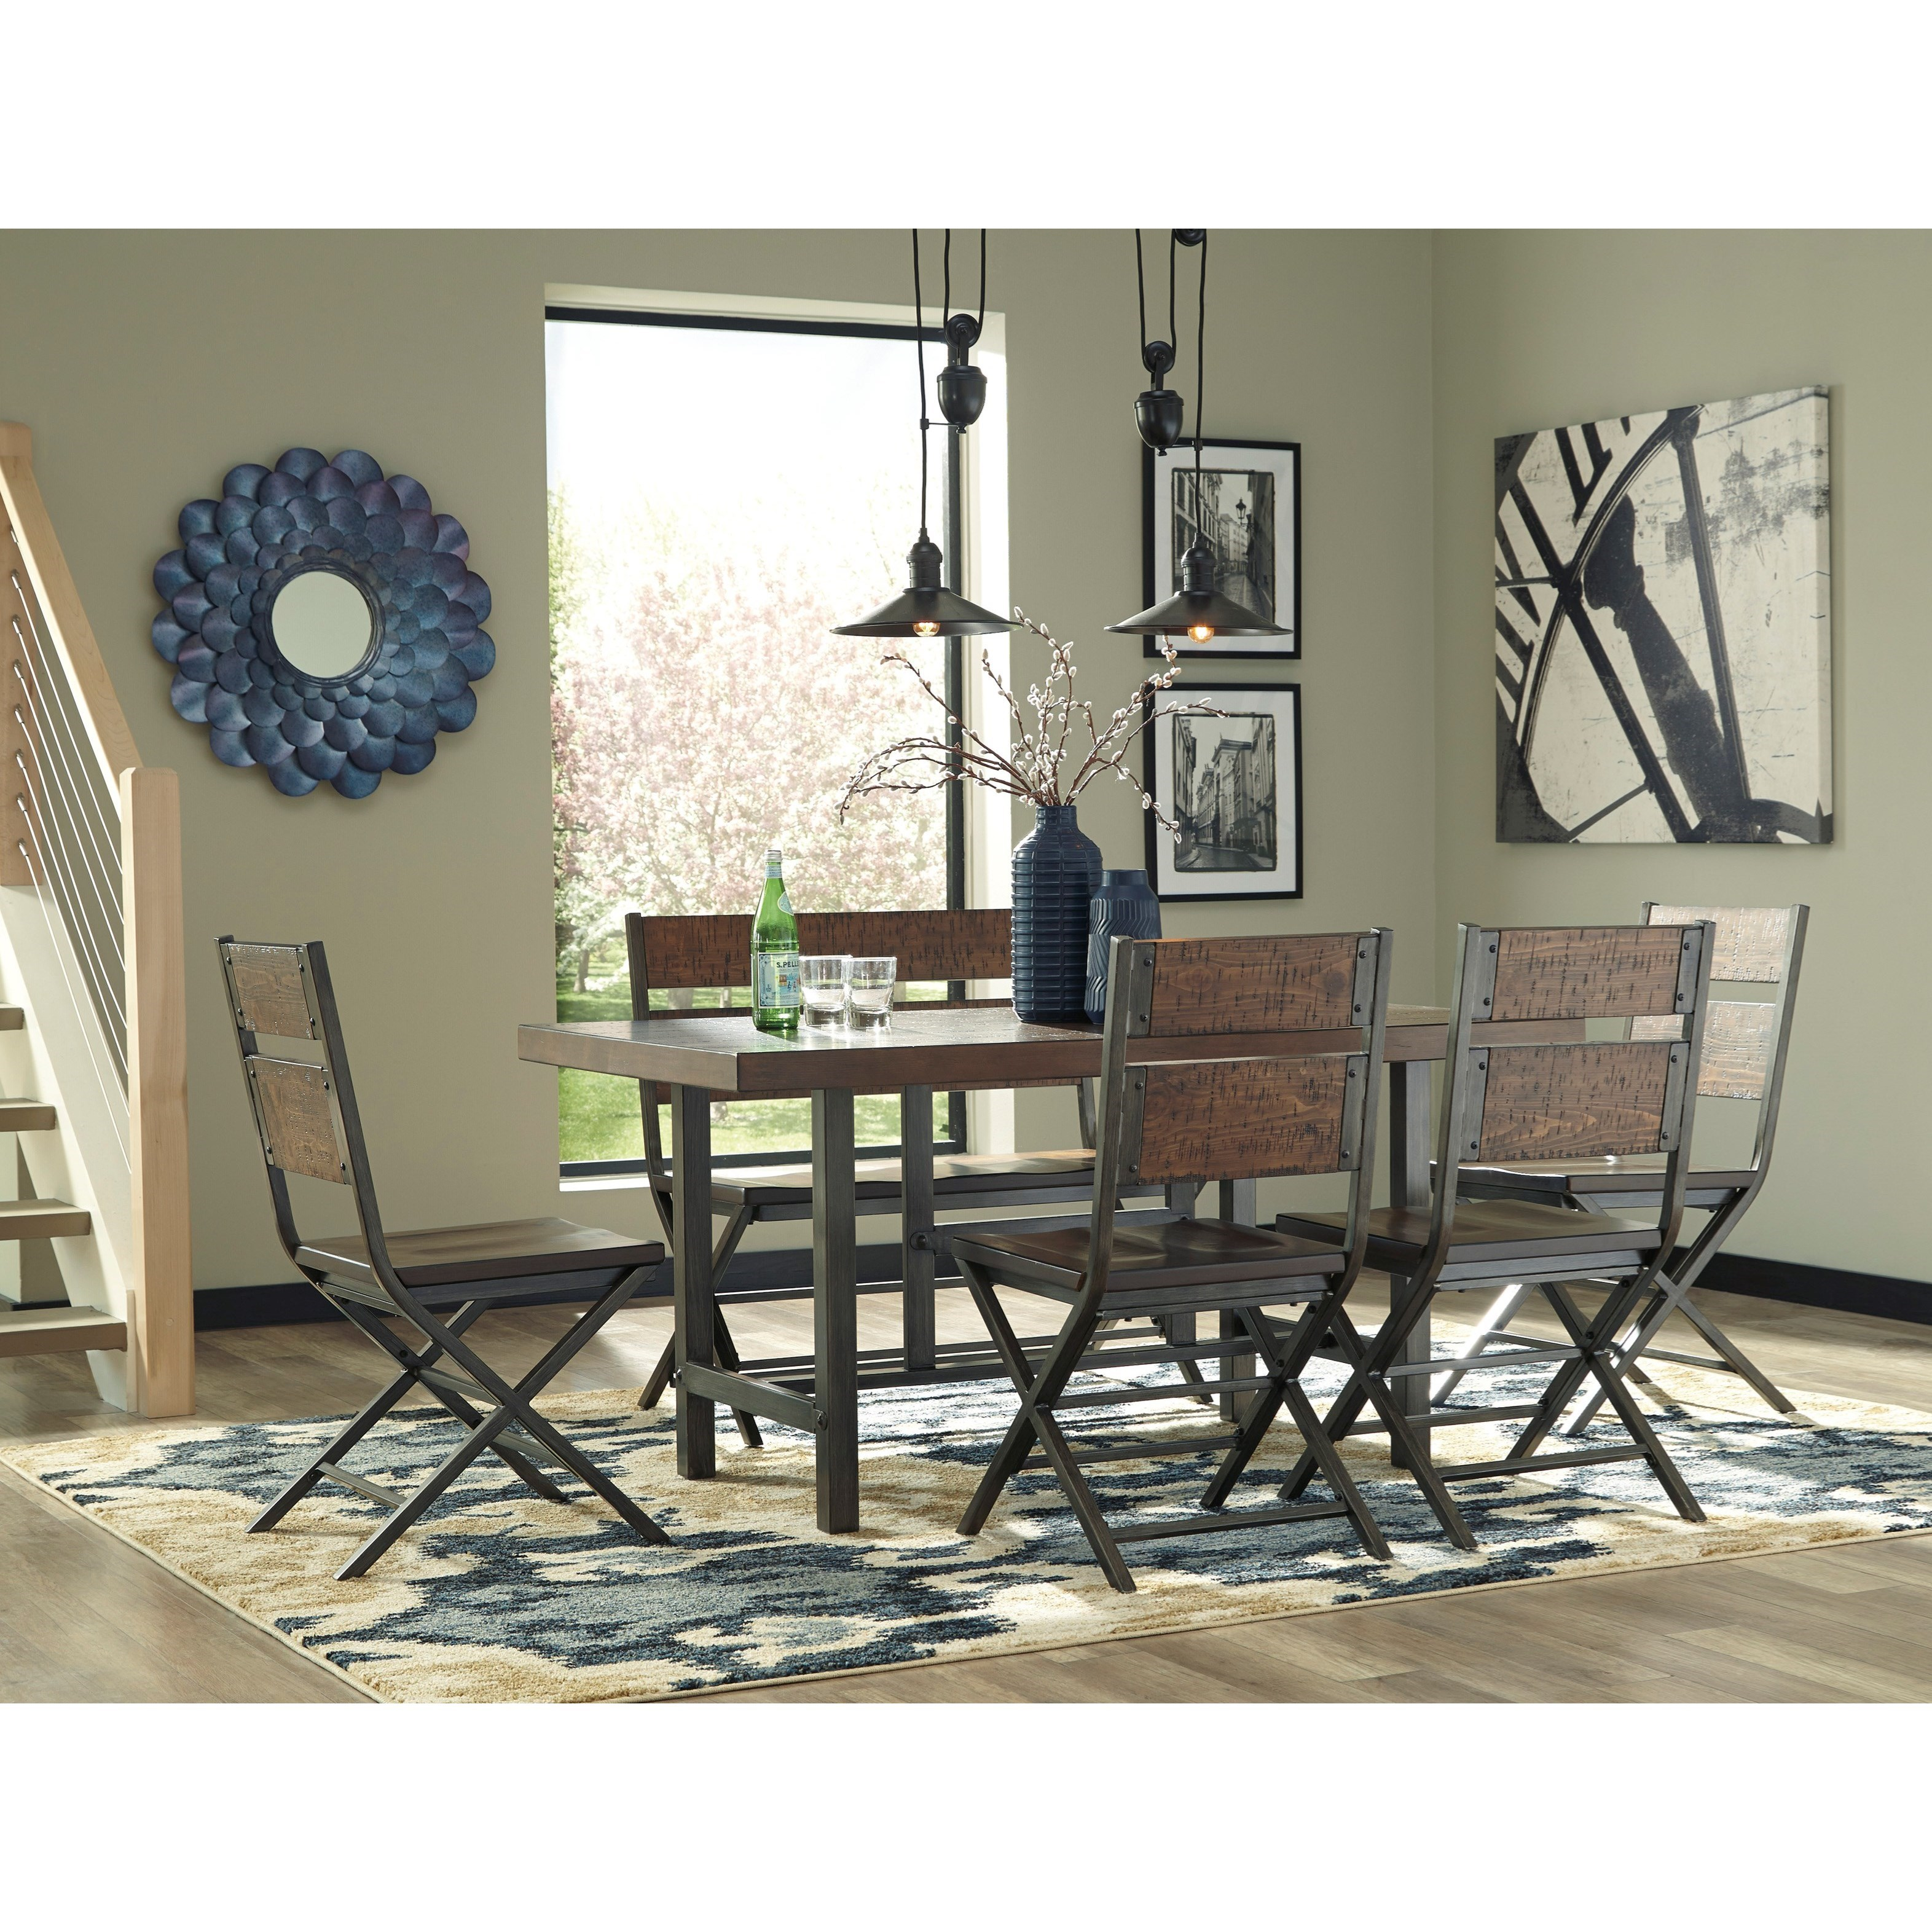 Distressed Dining Room Chairs: Distressed Pine Wood/Metal Dining Room Chair By Signature